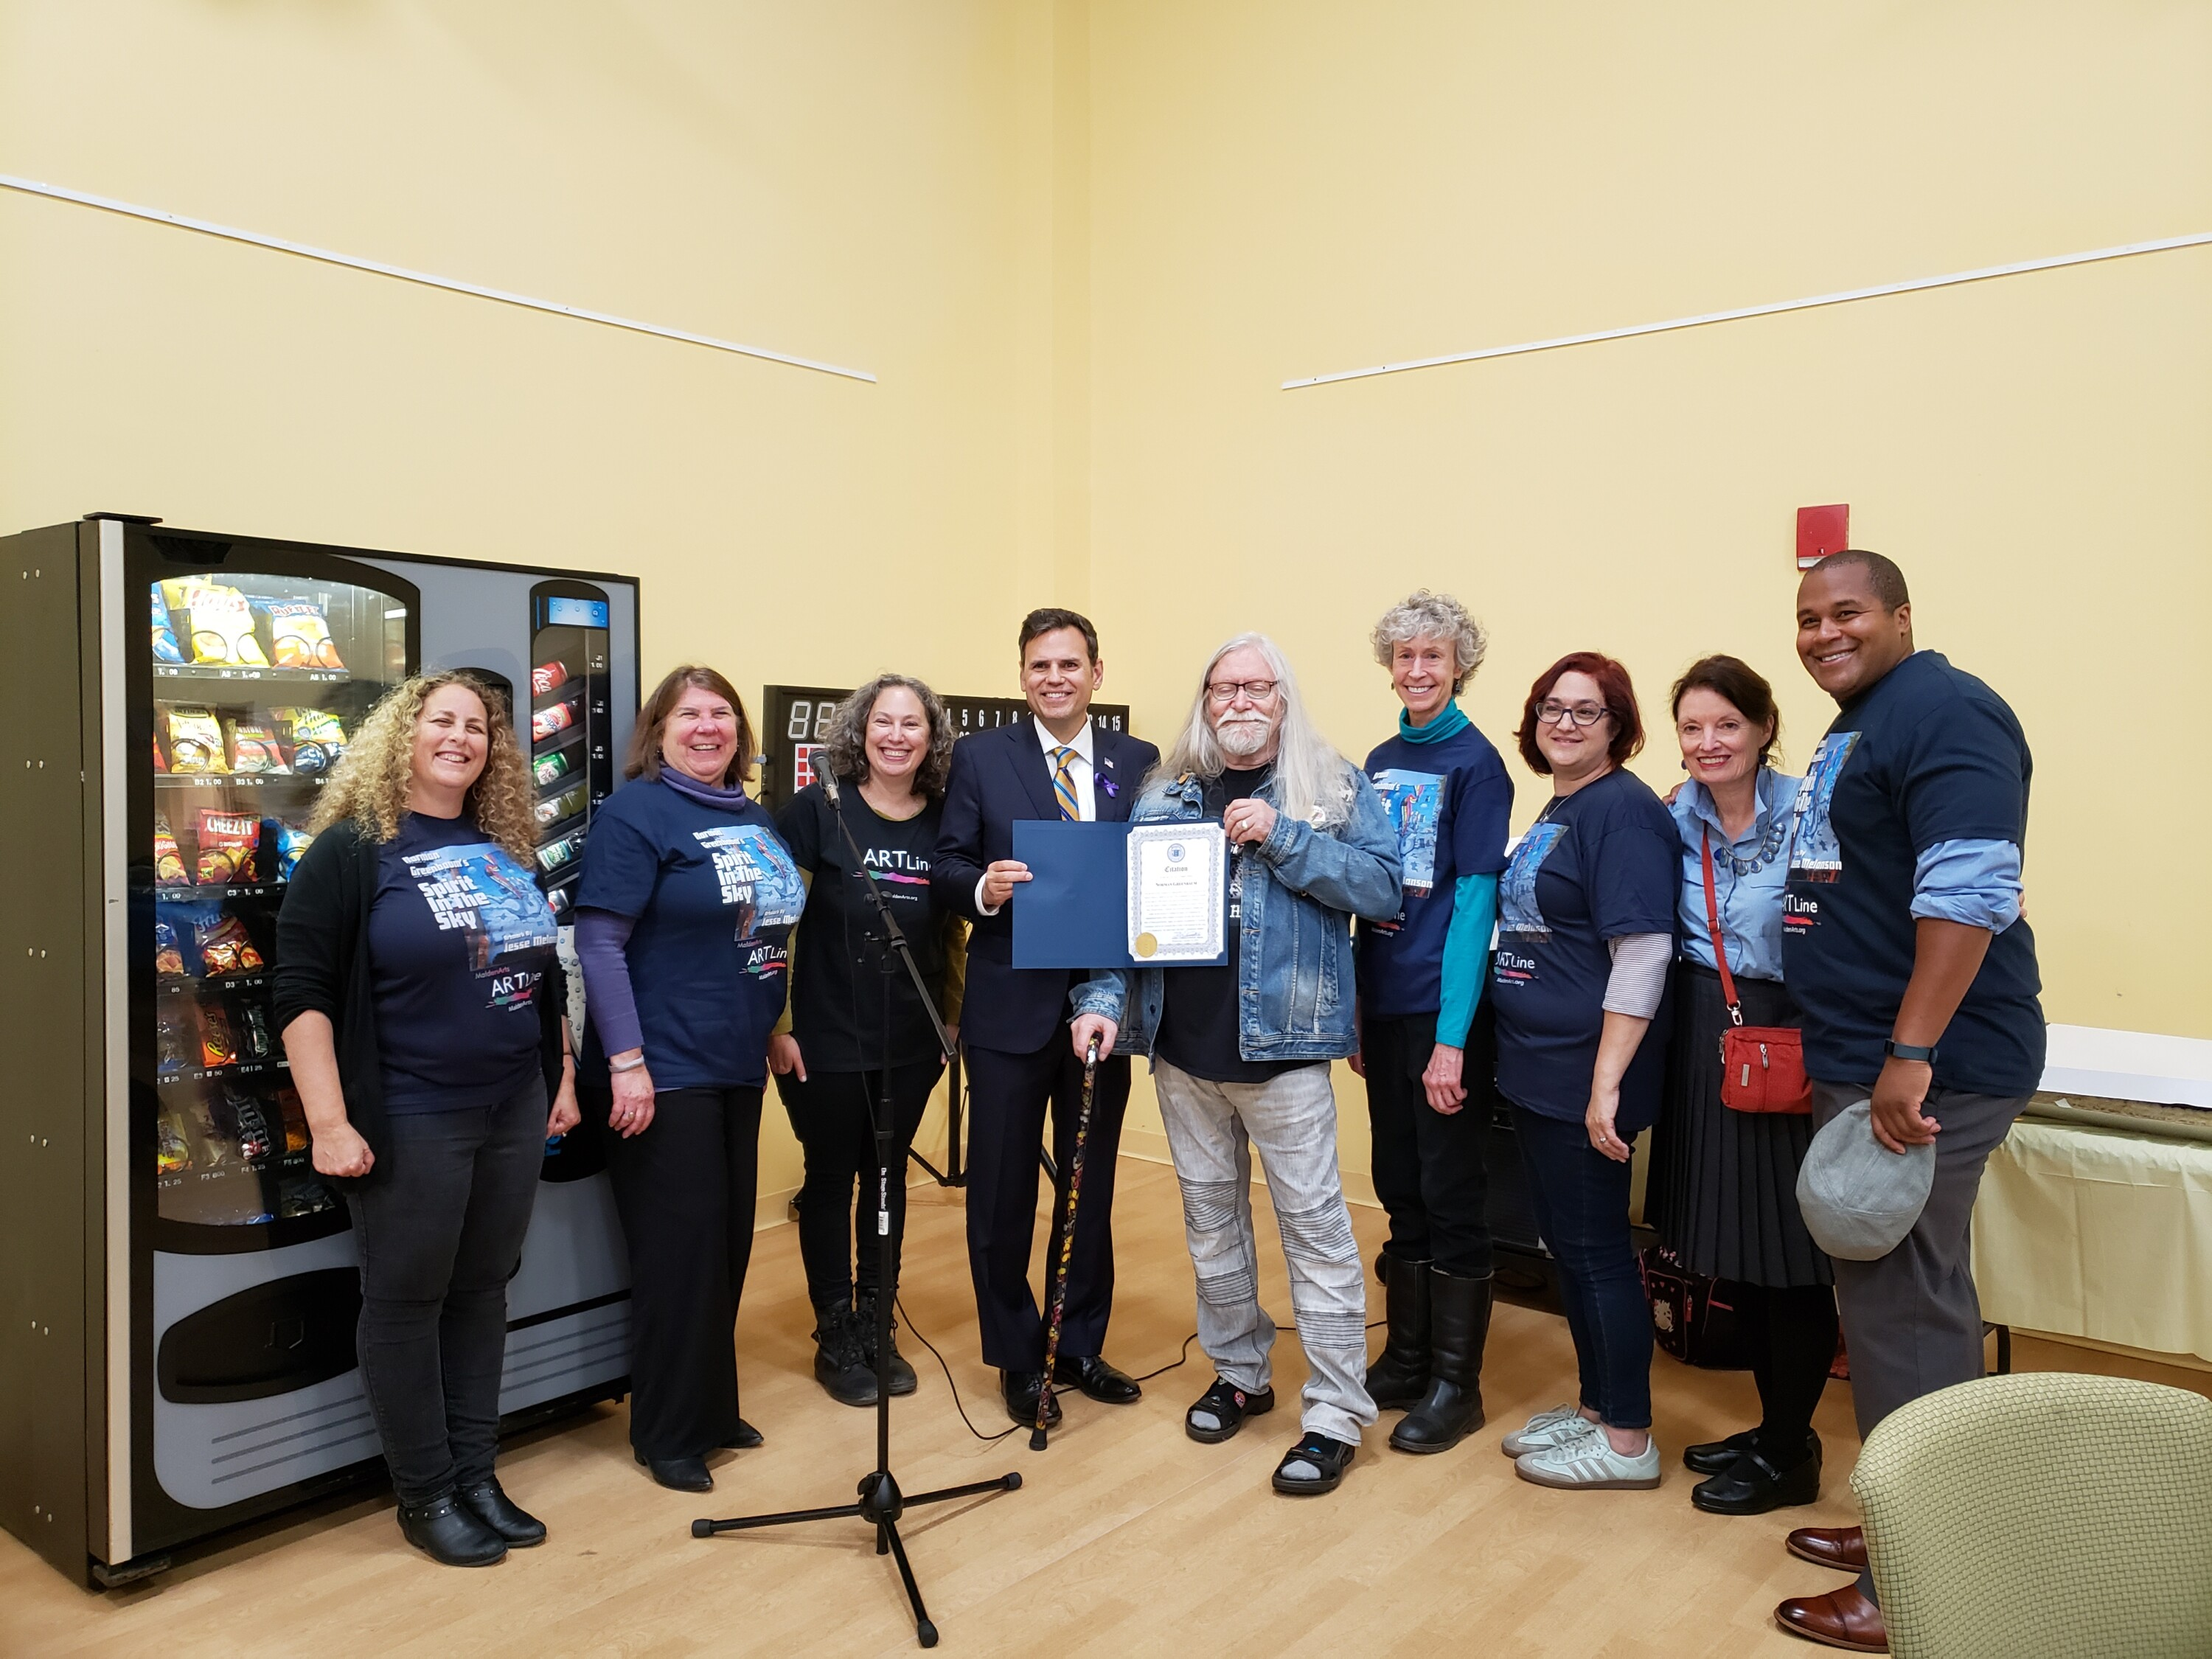 Members of Malden Arts with Mayor Gary Christenson and Norman Greenbaum (Photo: Susie Davidson)